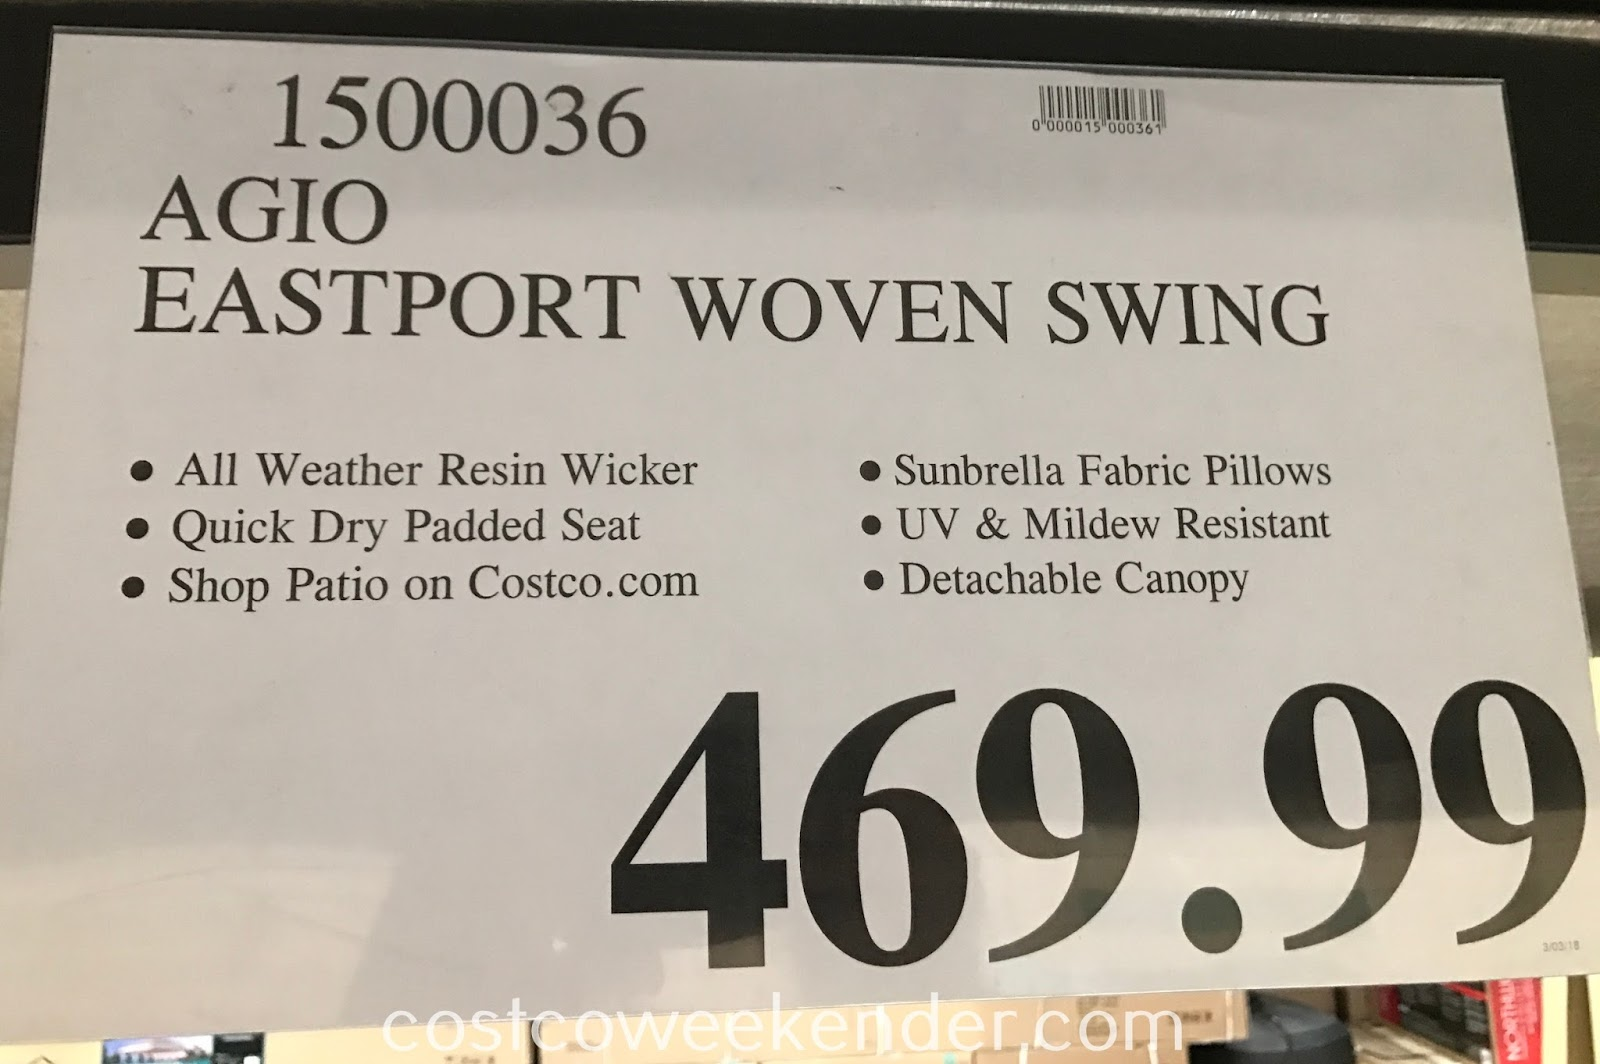 Deal for the Agio Eastport Woven Swing at Costco